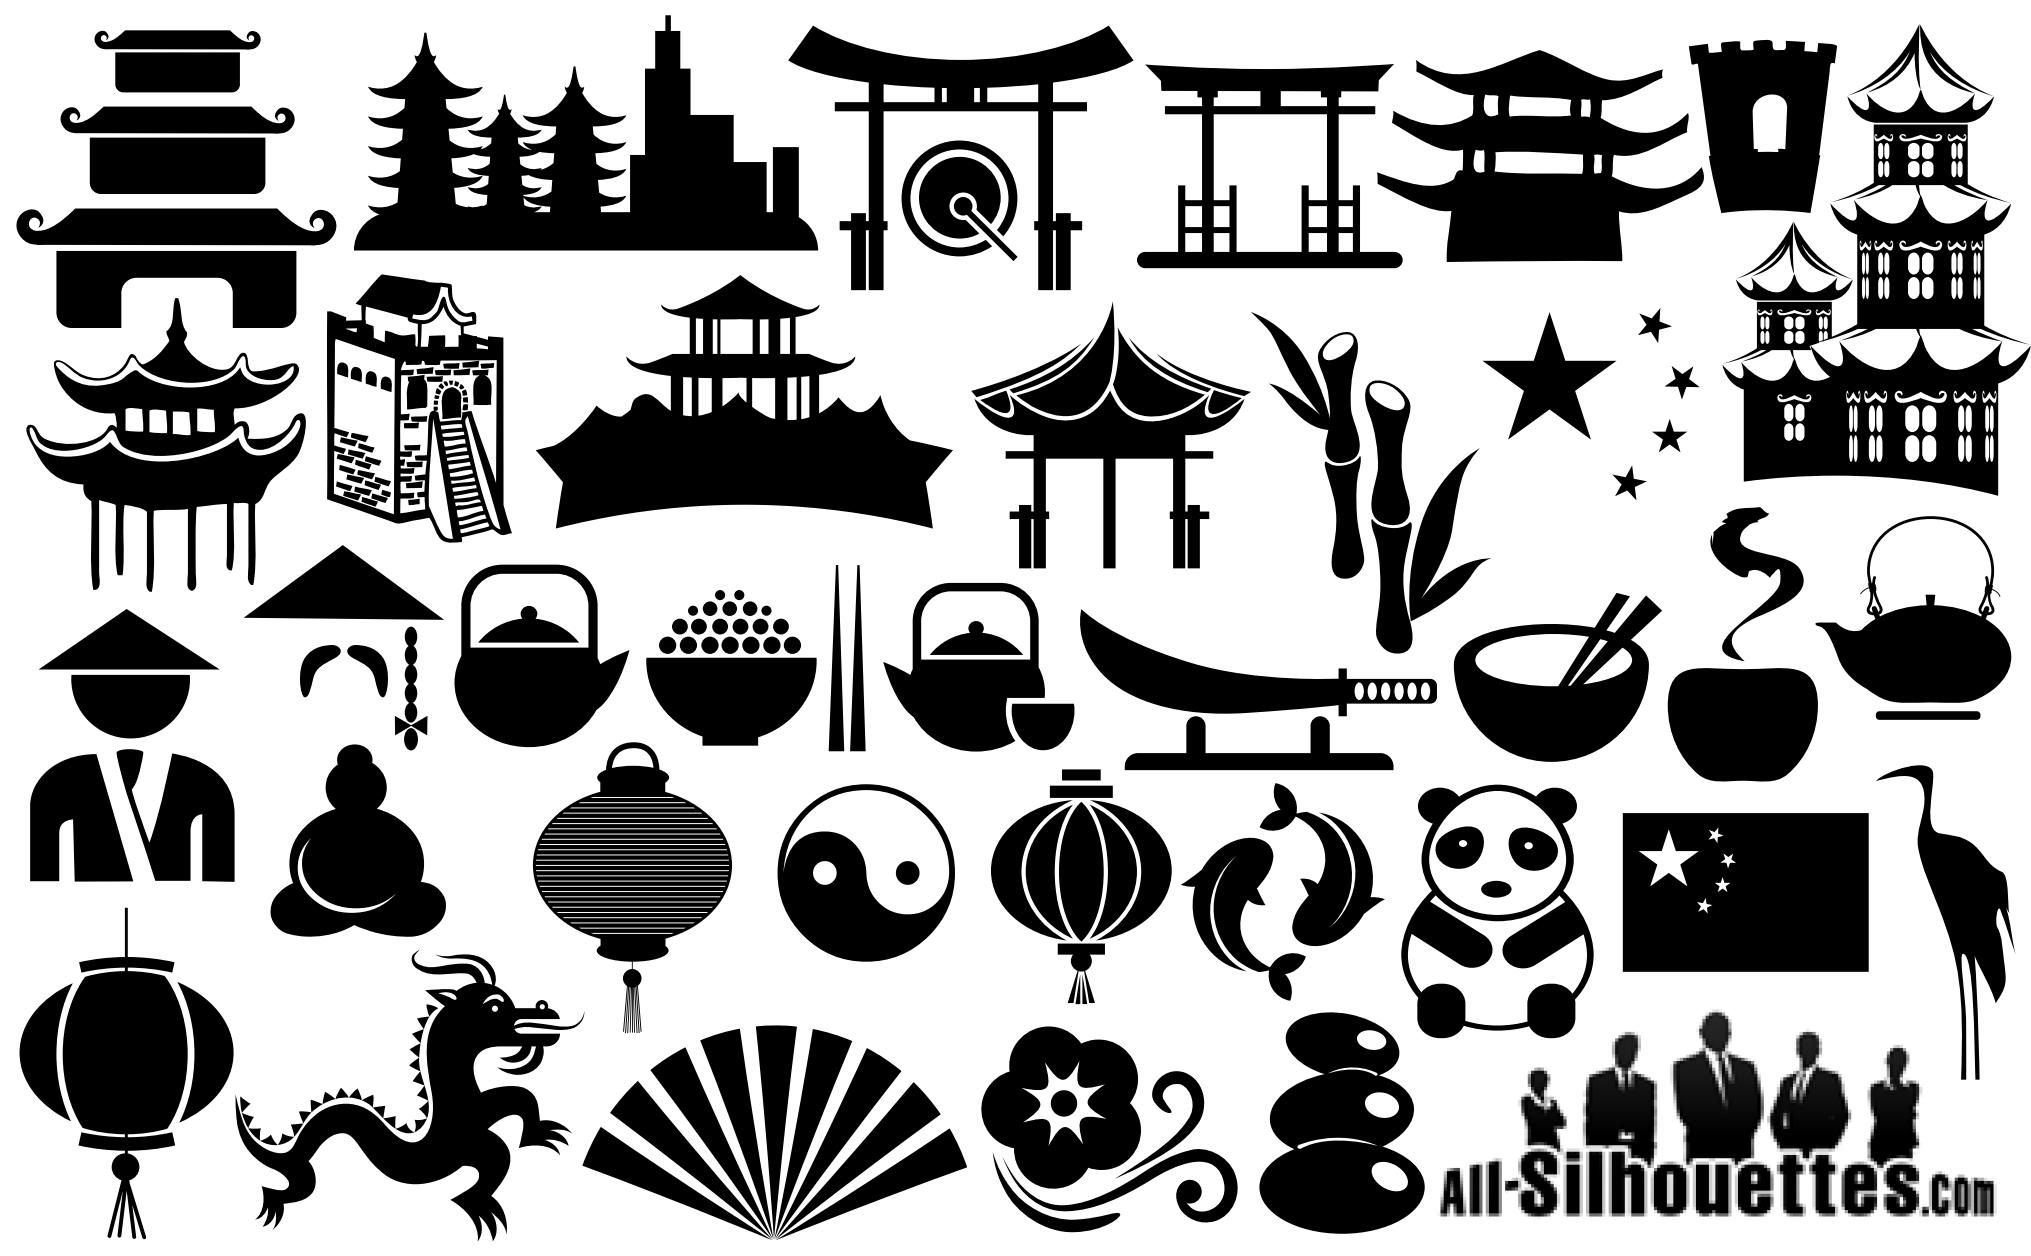 China Symbols Silhouettes Silhouettes Vector Pinterest